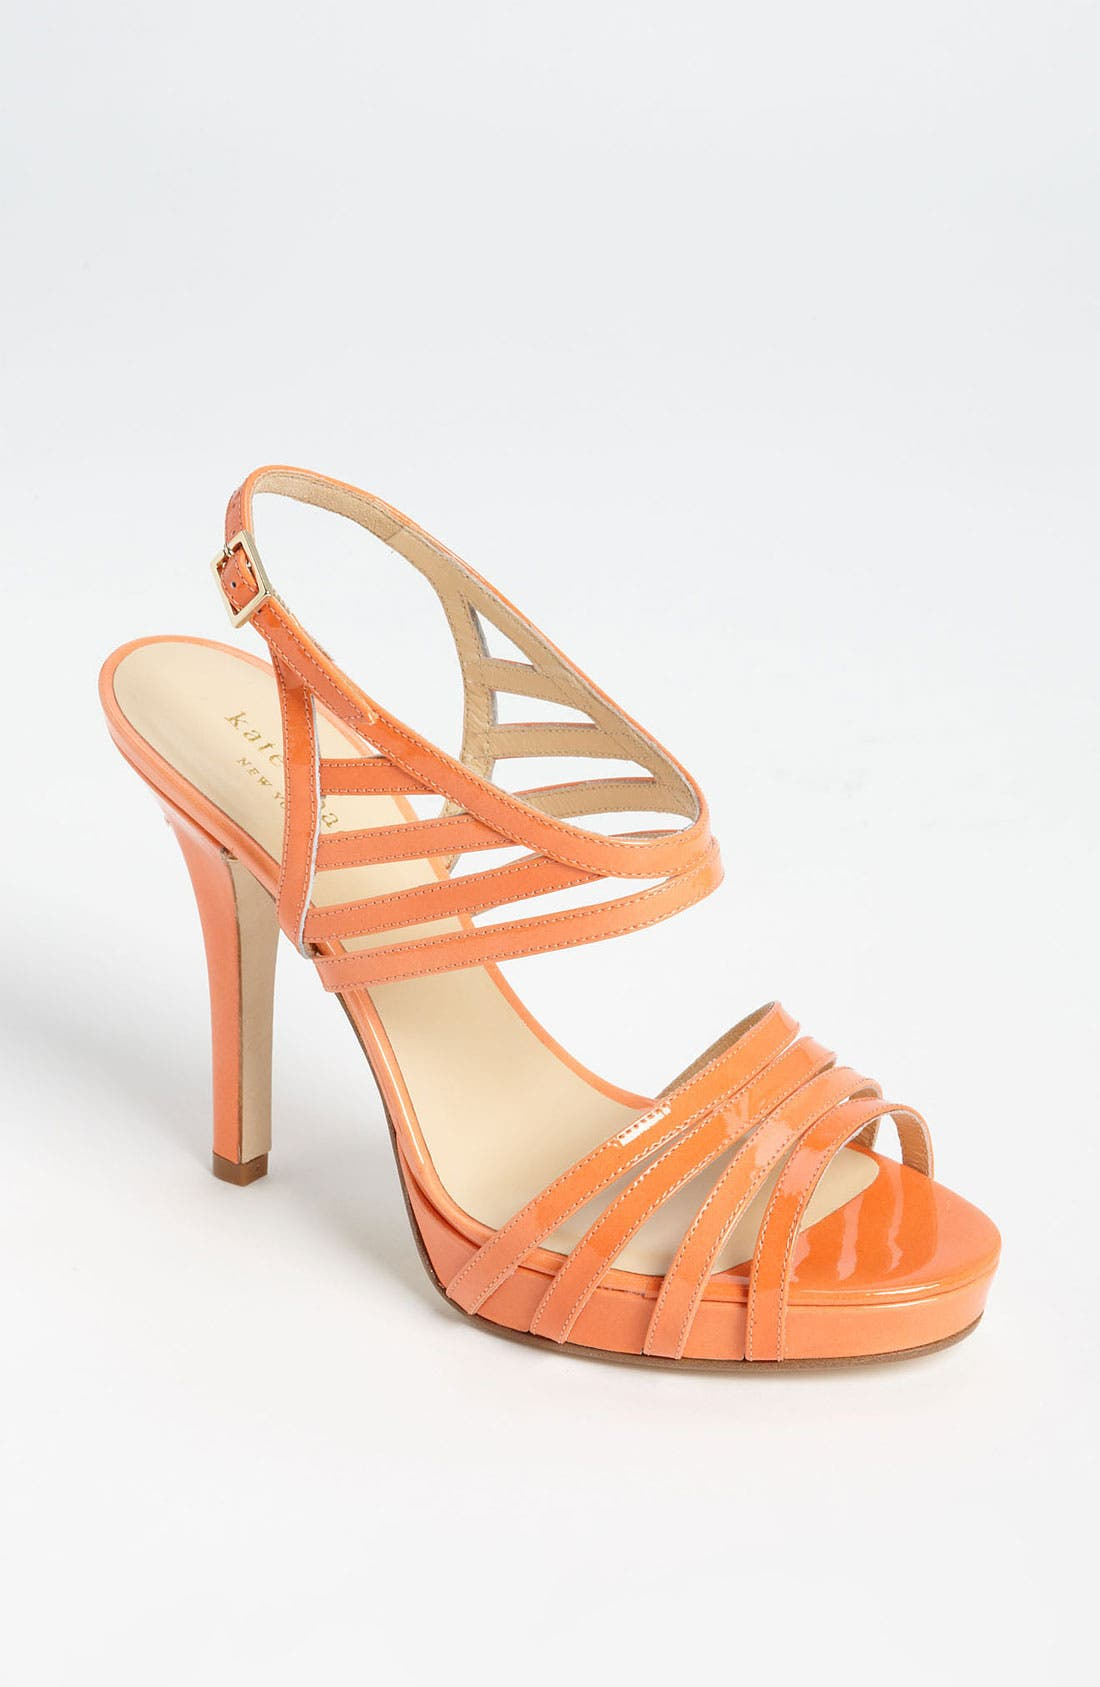 Main Image - kate spade new york 'raven' sandal